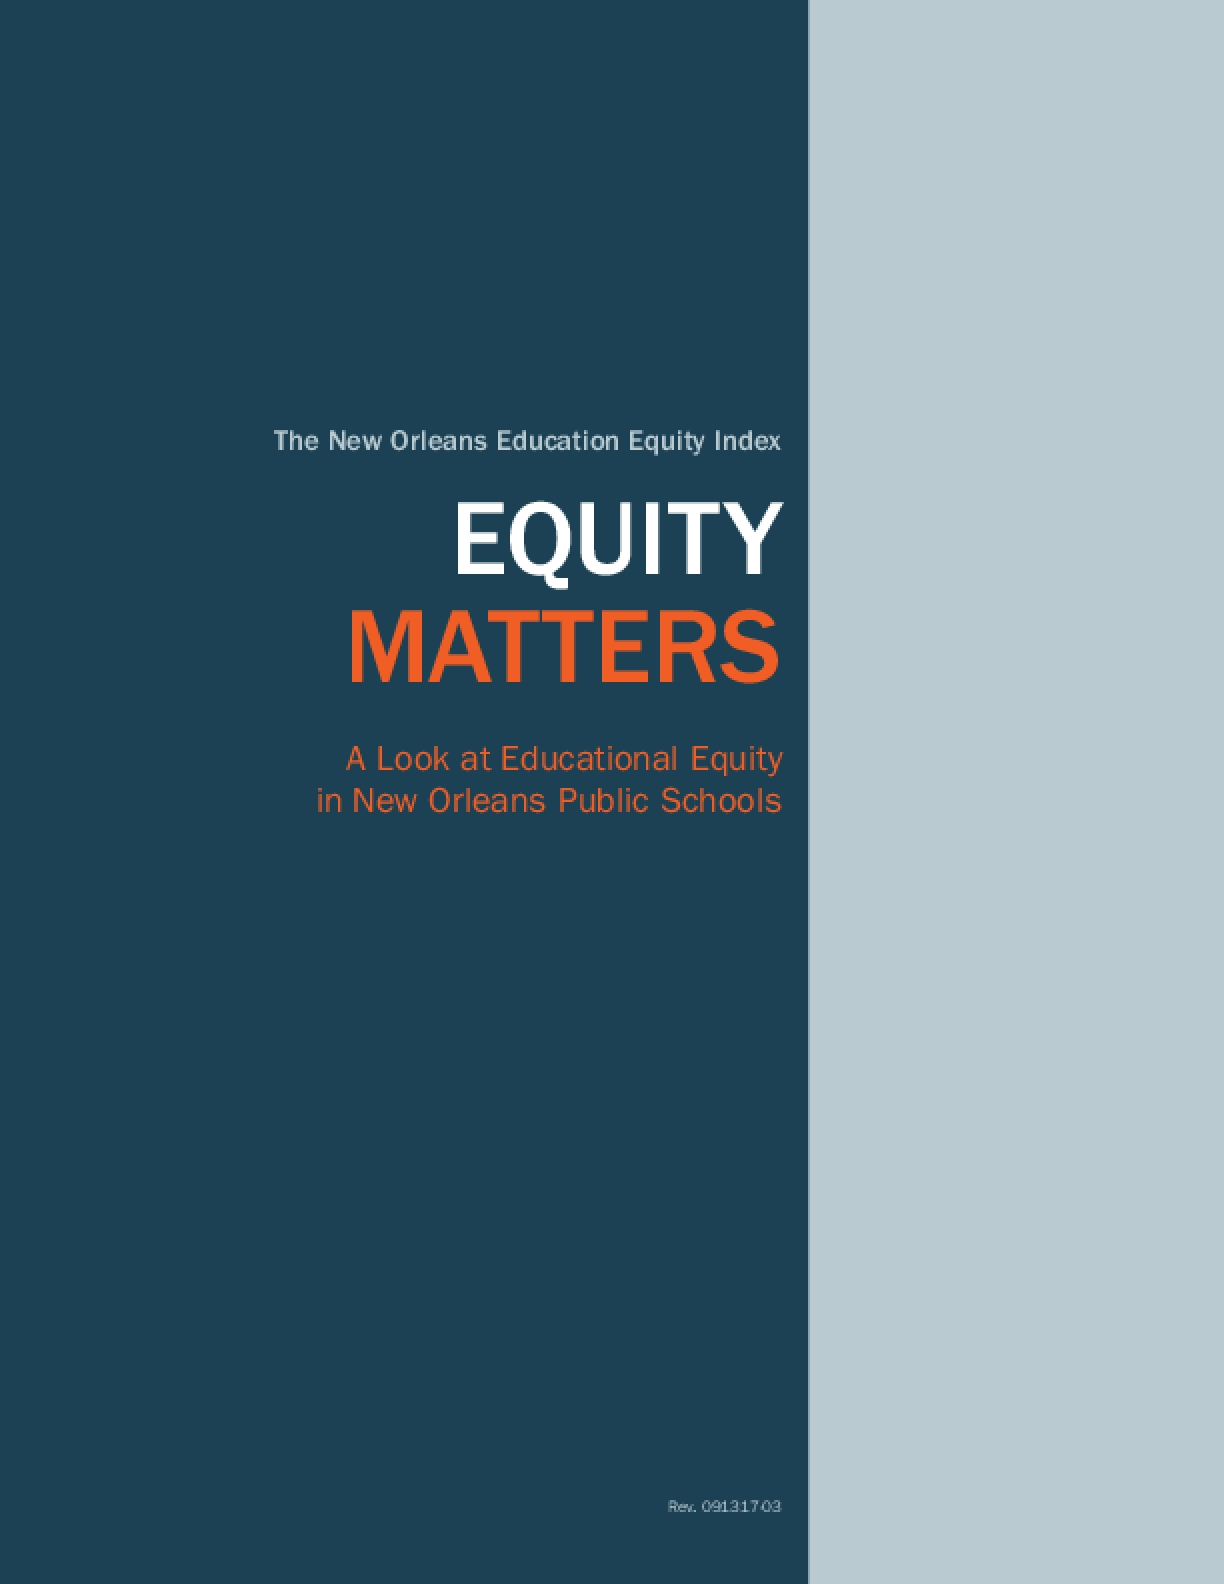 The New Orleans Education Equity Index: Equity Matters,  A Look at Educational Equity in New Orleans Public Schools